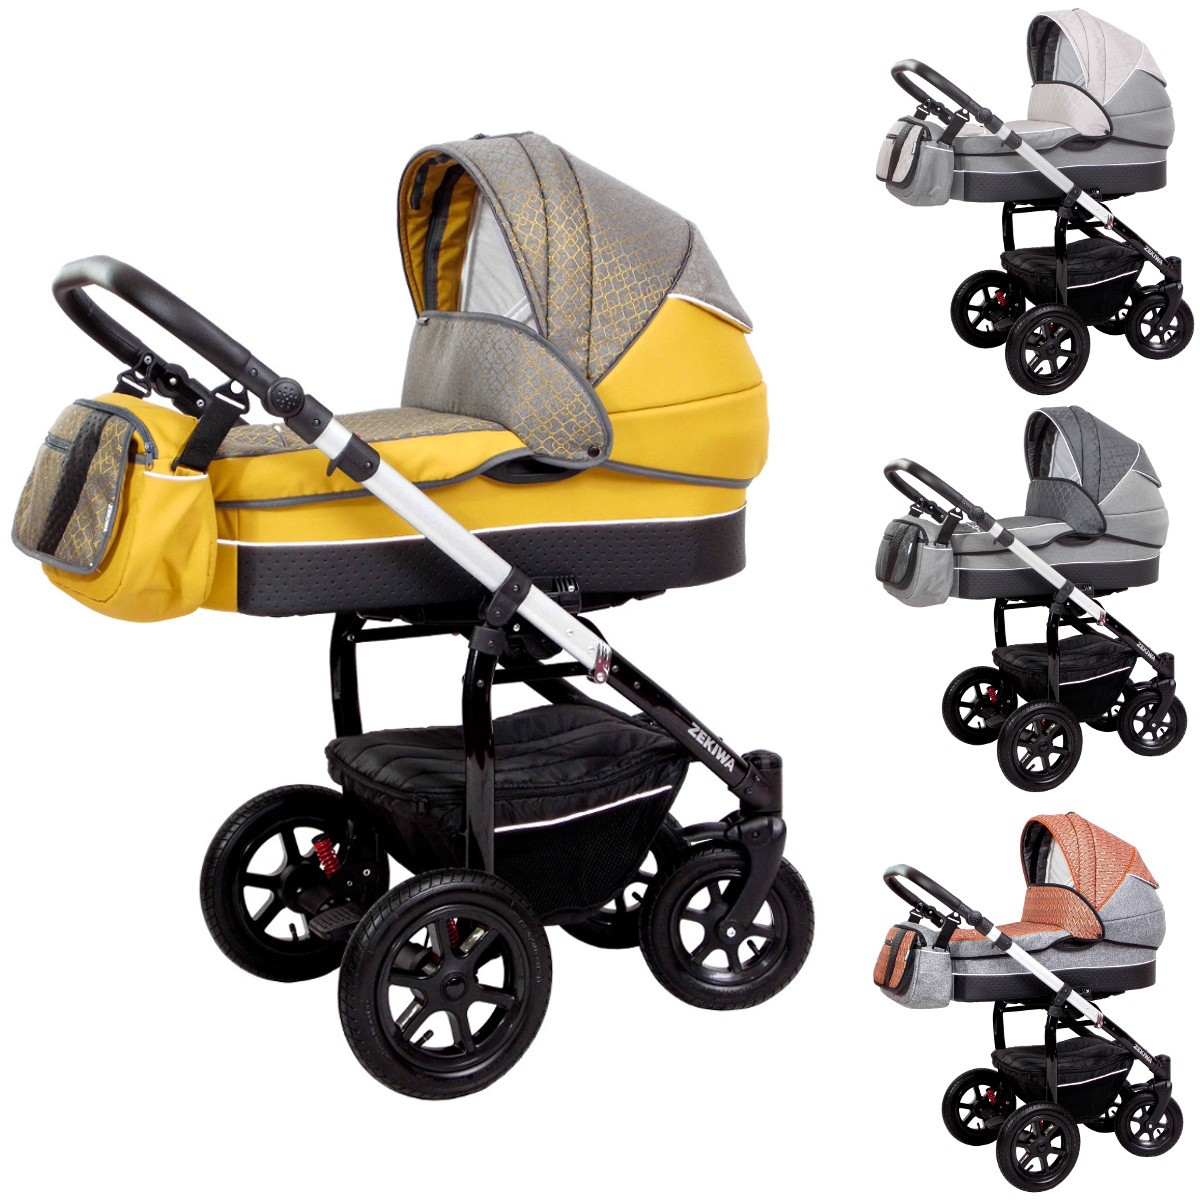 zekiwa kombi kinderwagen saturn premium 2in1 mit babywanne sportwagenaufsatz buggy oder 3in1. Black Bedroom Furniture Sets. Home Design Ideas